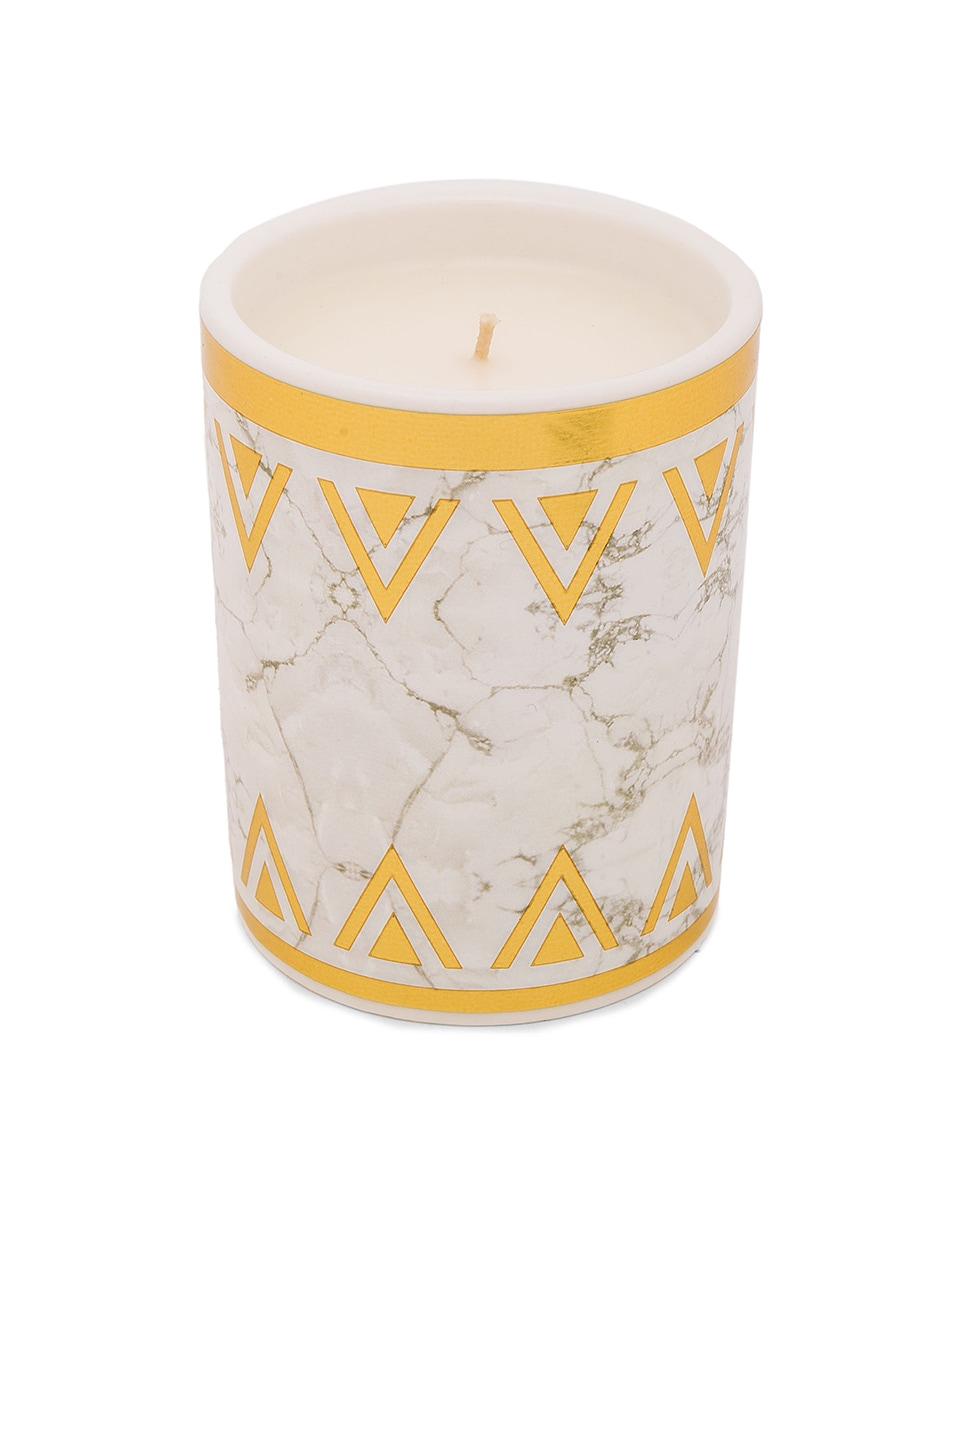 House of Harlow 1960 House of Harlow Flower Child Candle in White & Gold